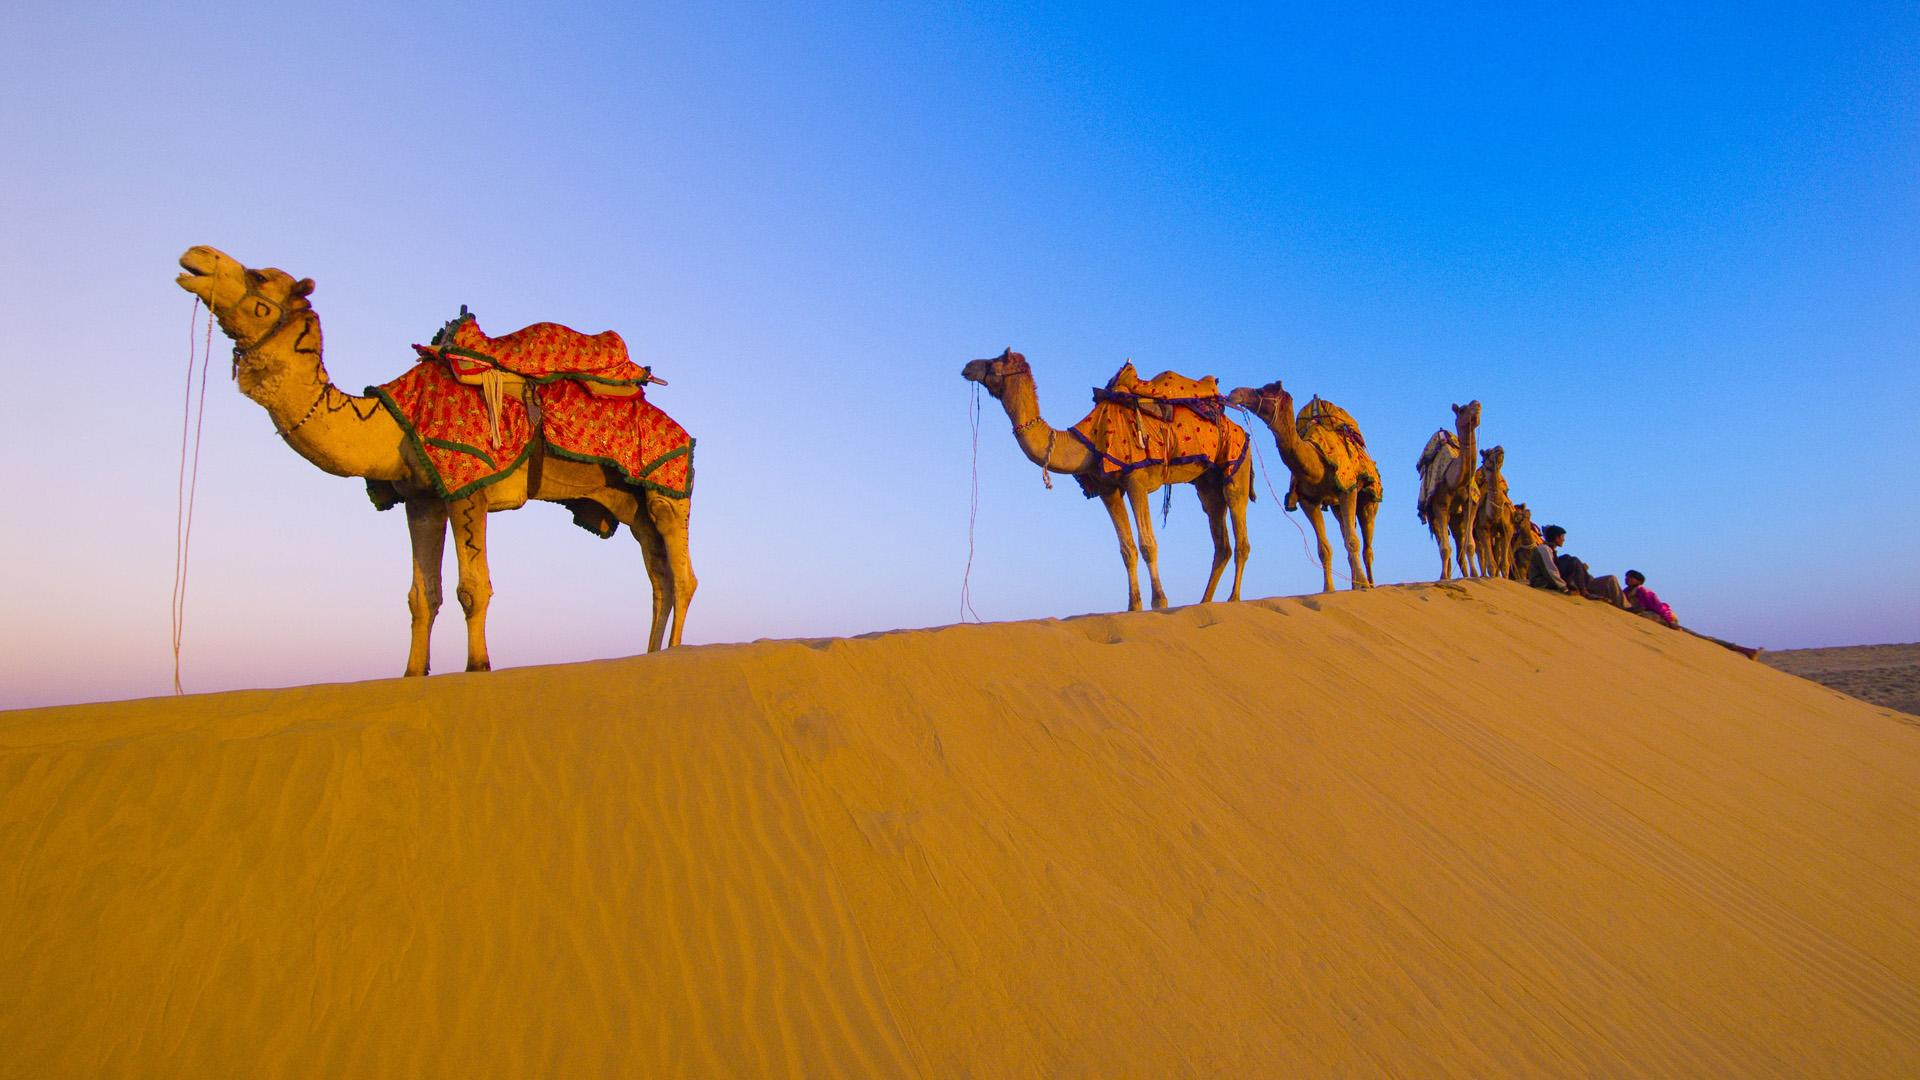 Camels generally travel 25 miles a day at 3 miles per hour.